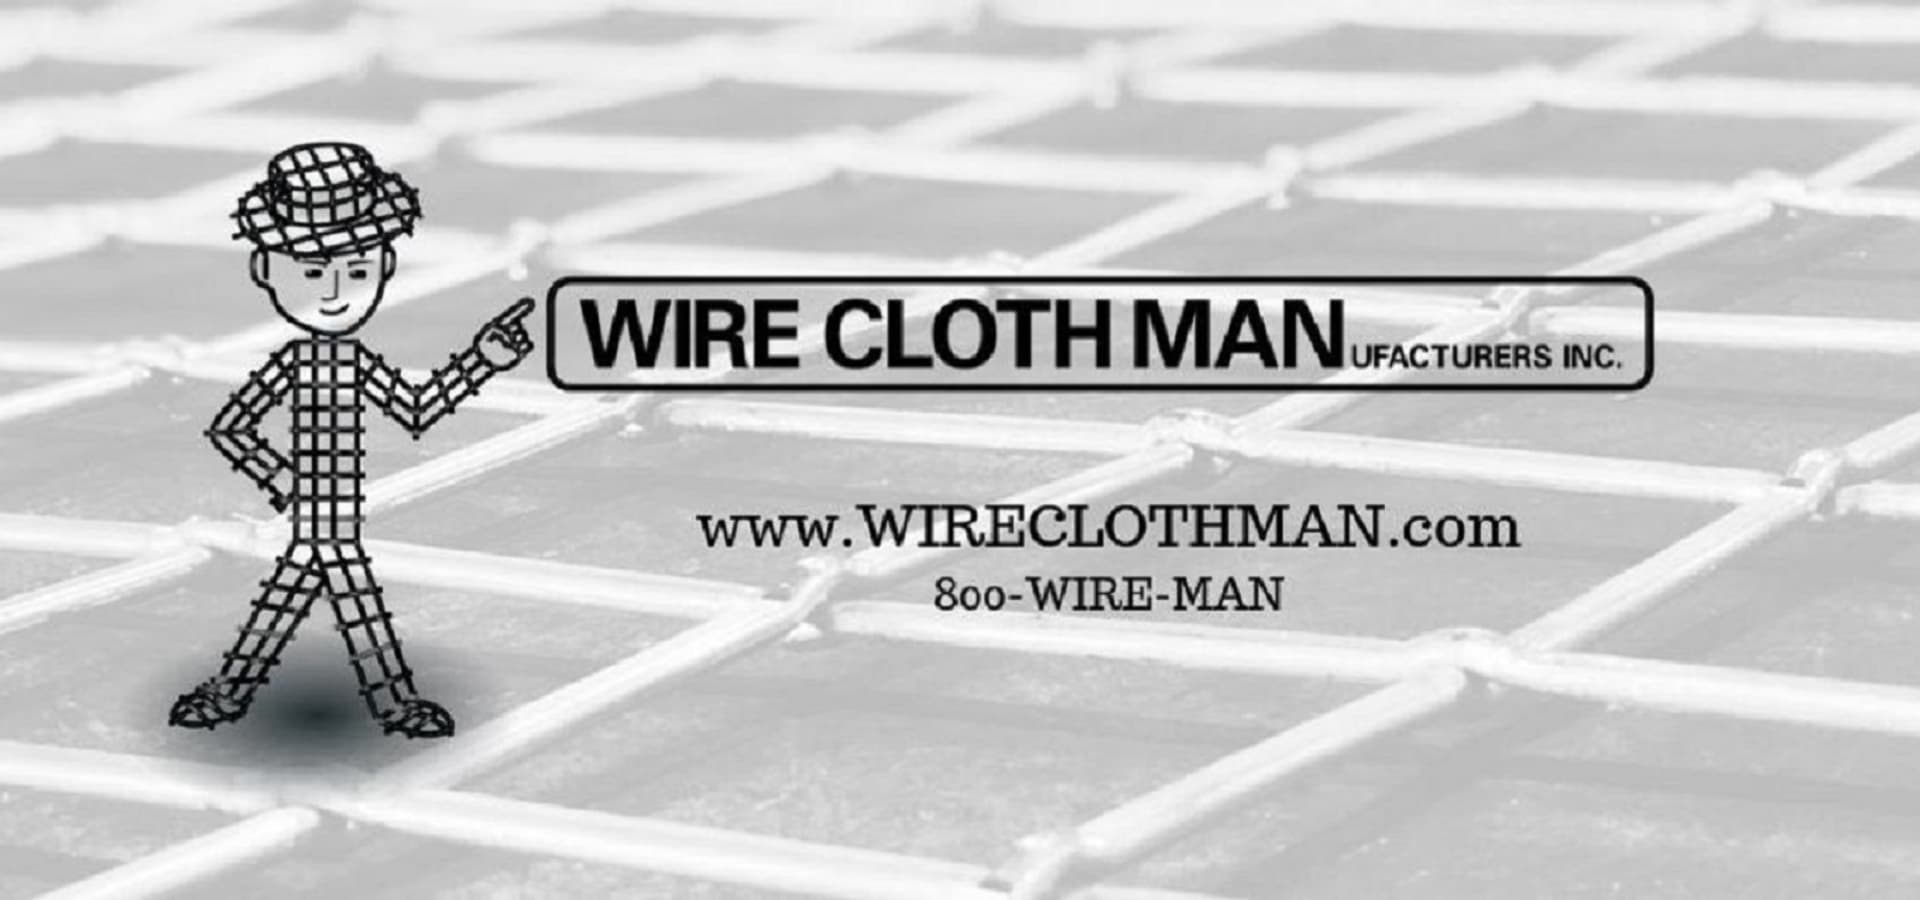 Wire Cloth Manufacturers, Inc.